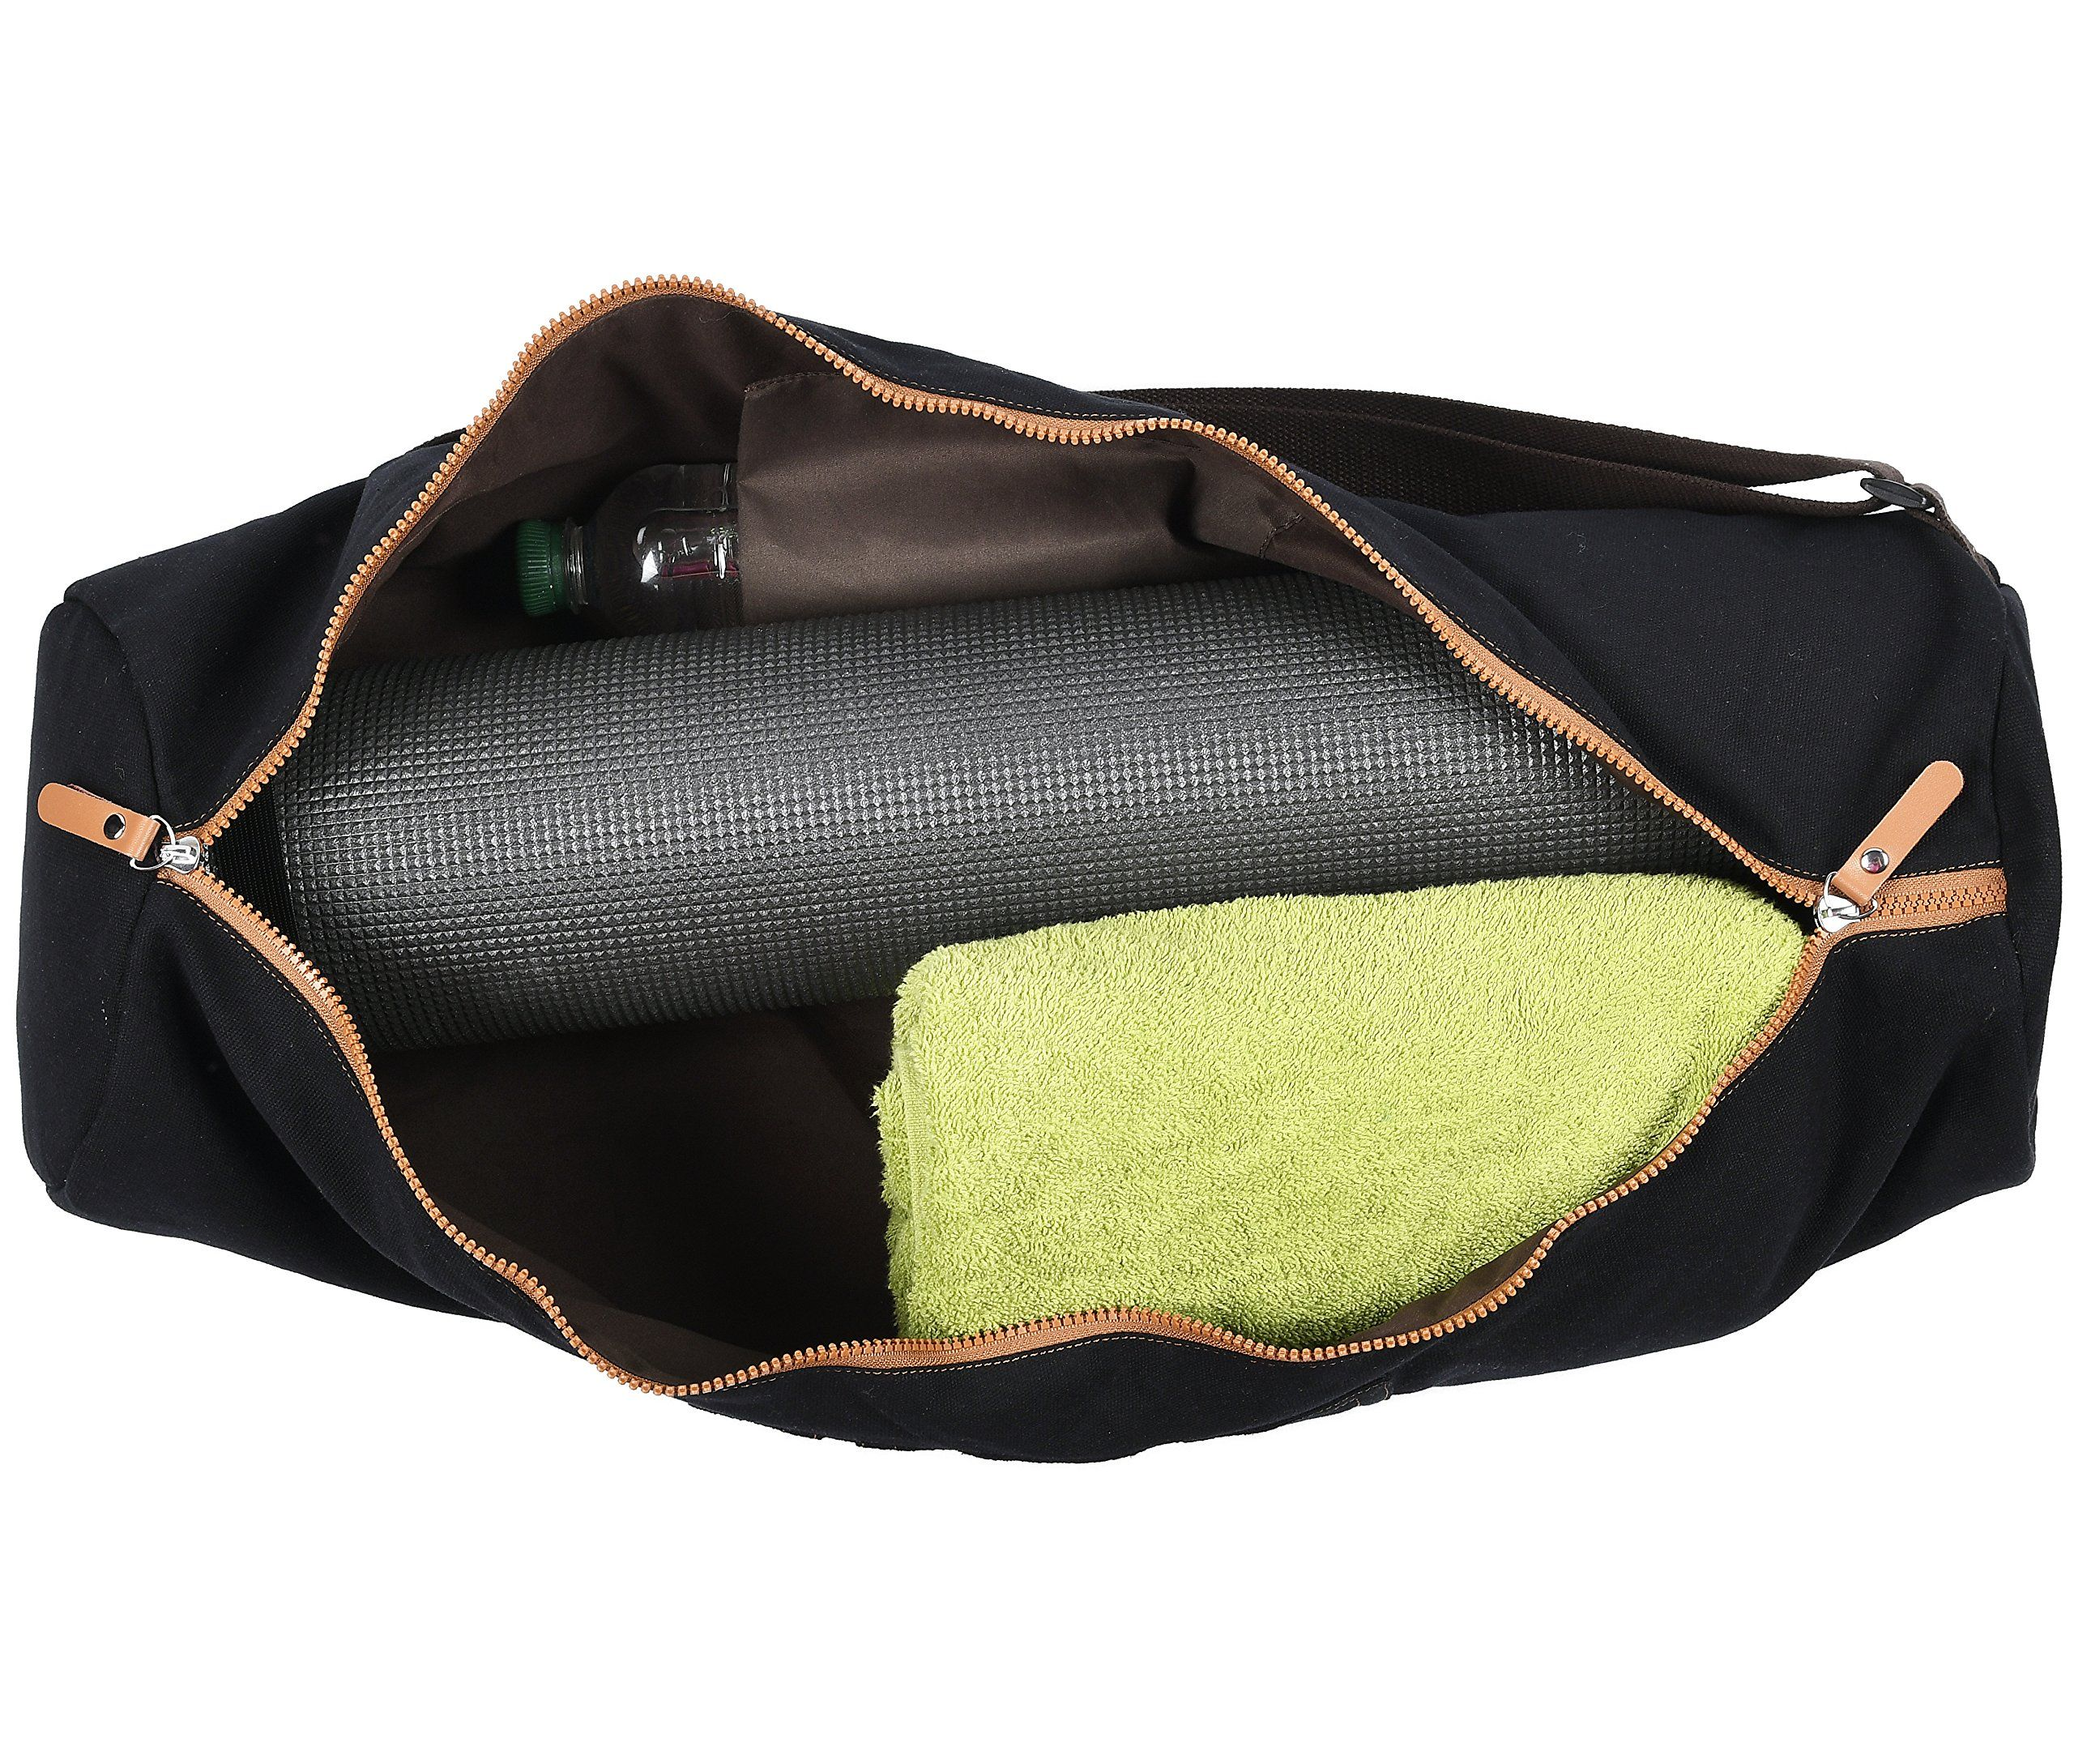 0d69dddaea Sanuvia Large Black Yoga Mat Bag - Easy to Carry. PRACTICAL